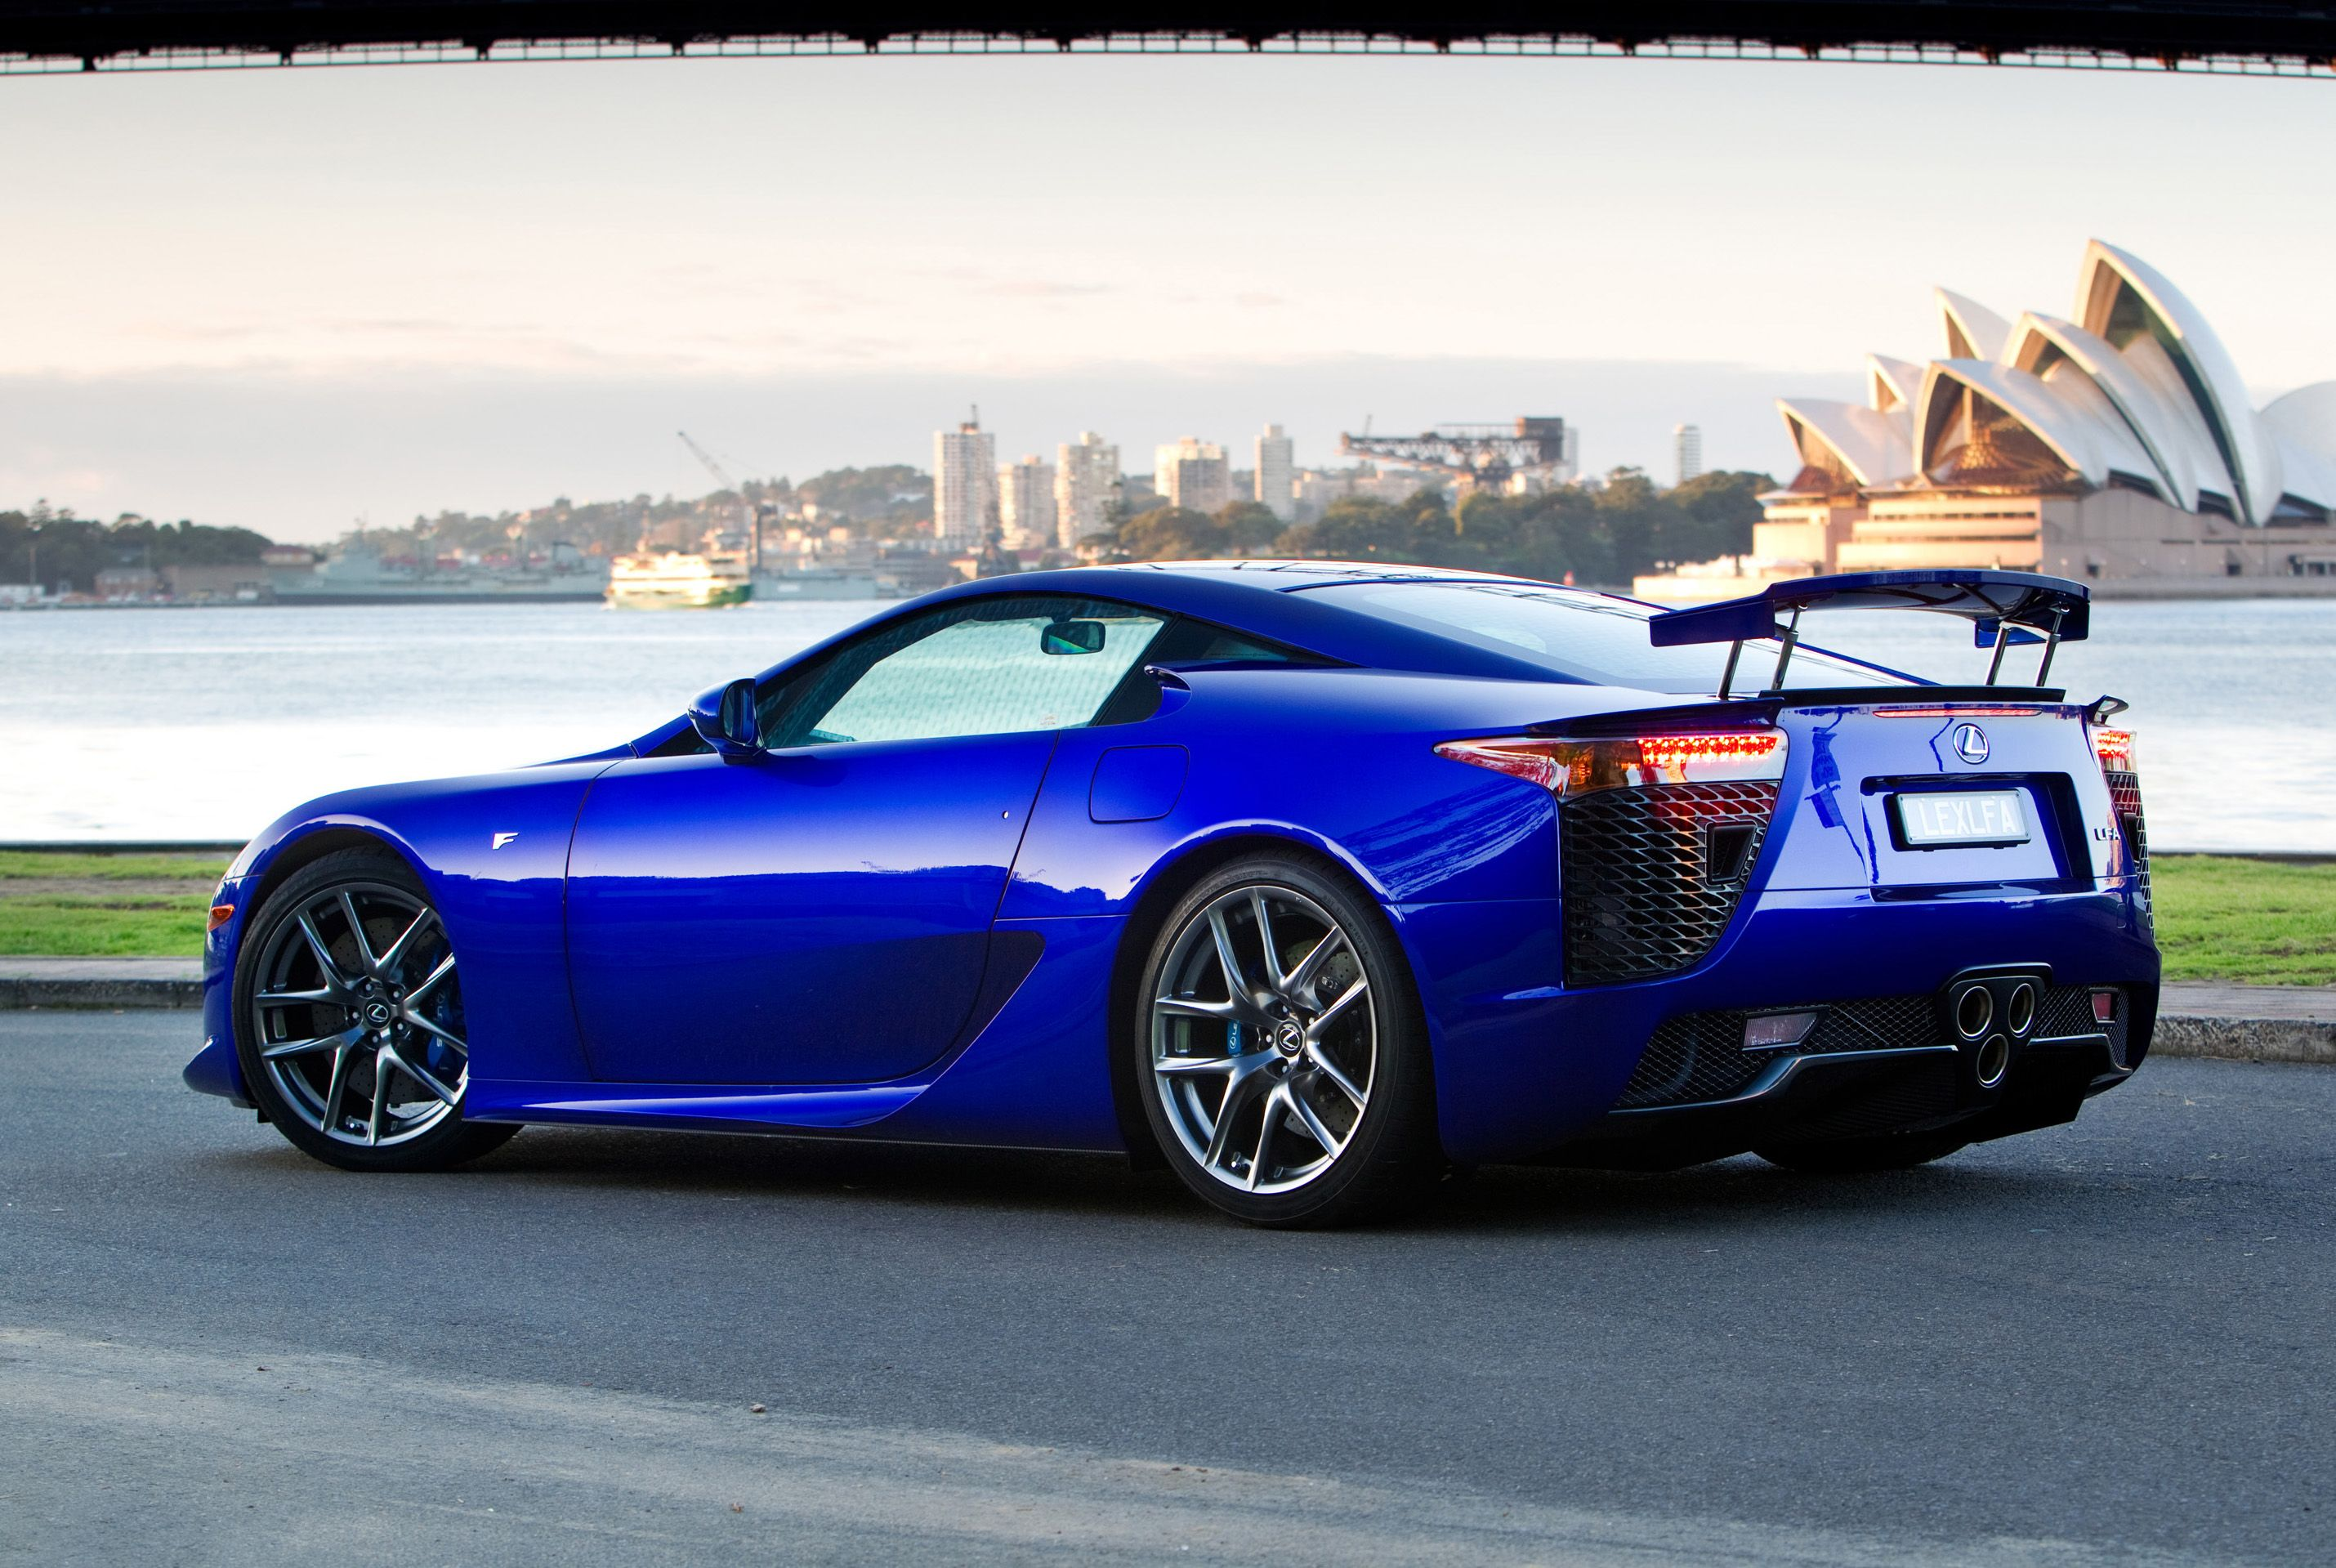 Lexus LFA  One of my most favorite cars to drive in NFS Most